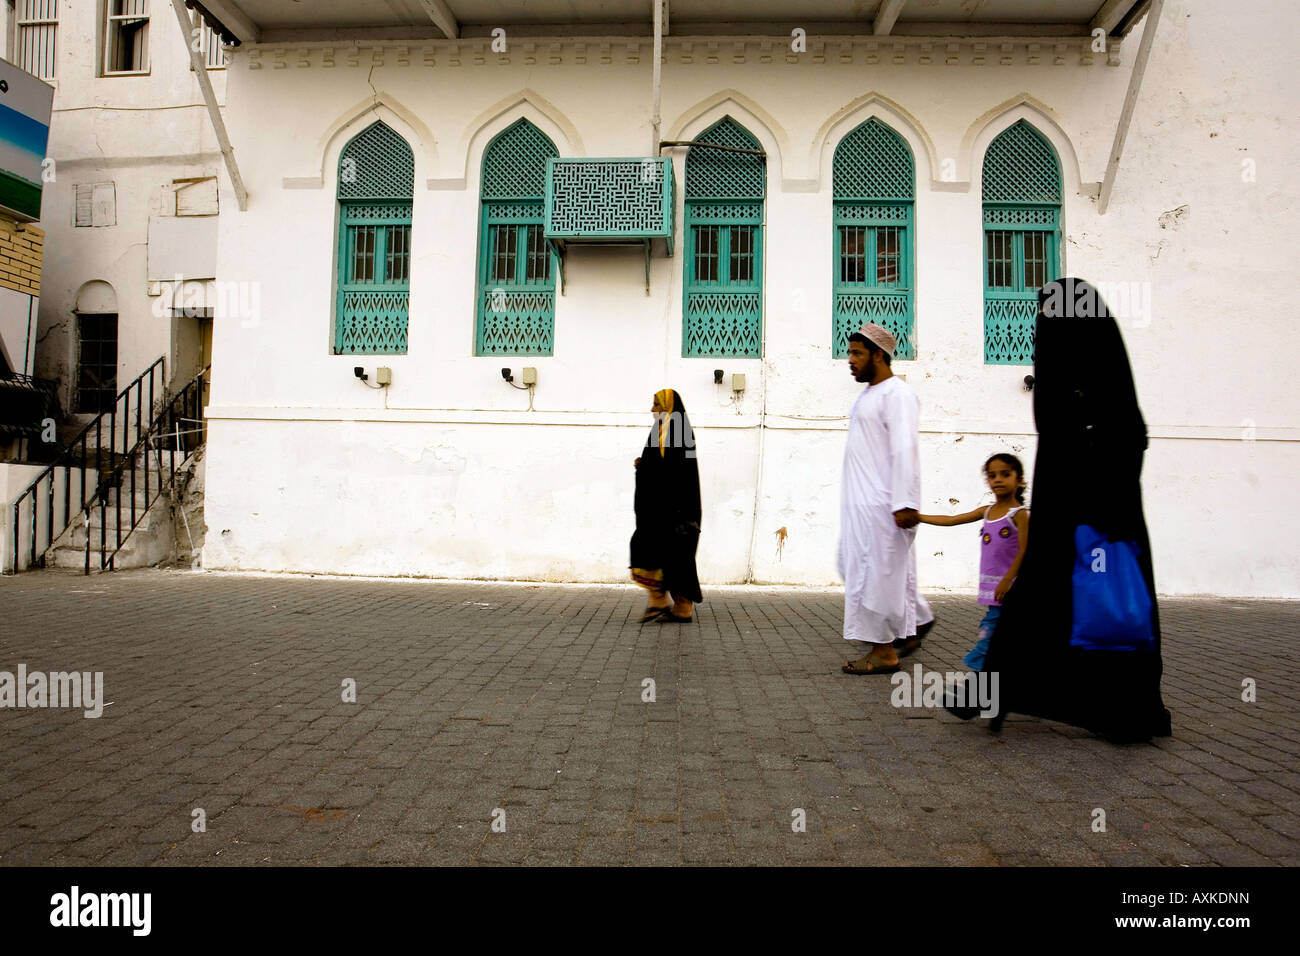 Oman, Muscat, Muttrah. Locals, Al-Lawatiah District. - Stock Image